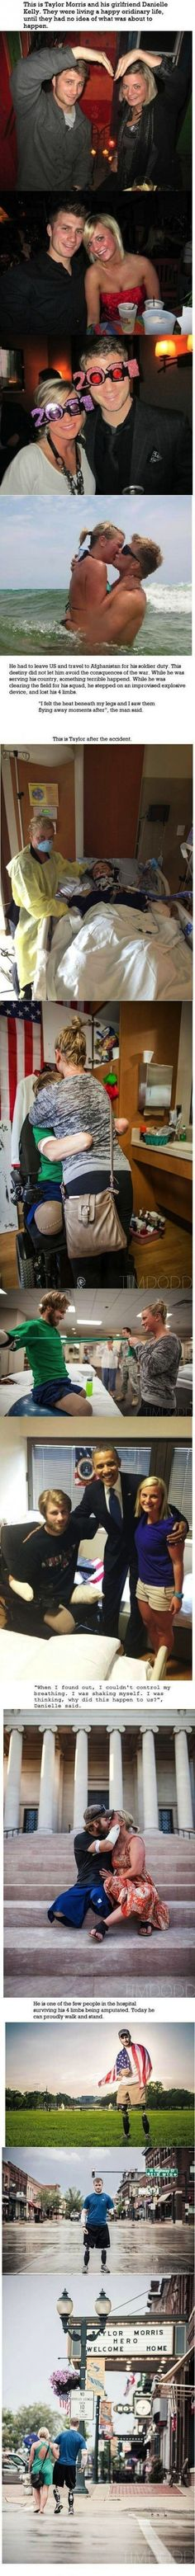 A love story in pictures. | Support Our Troops